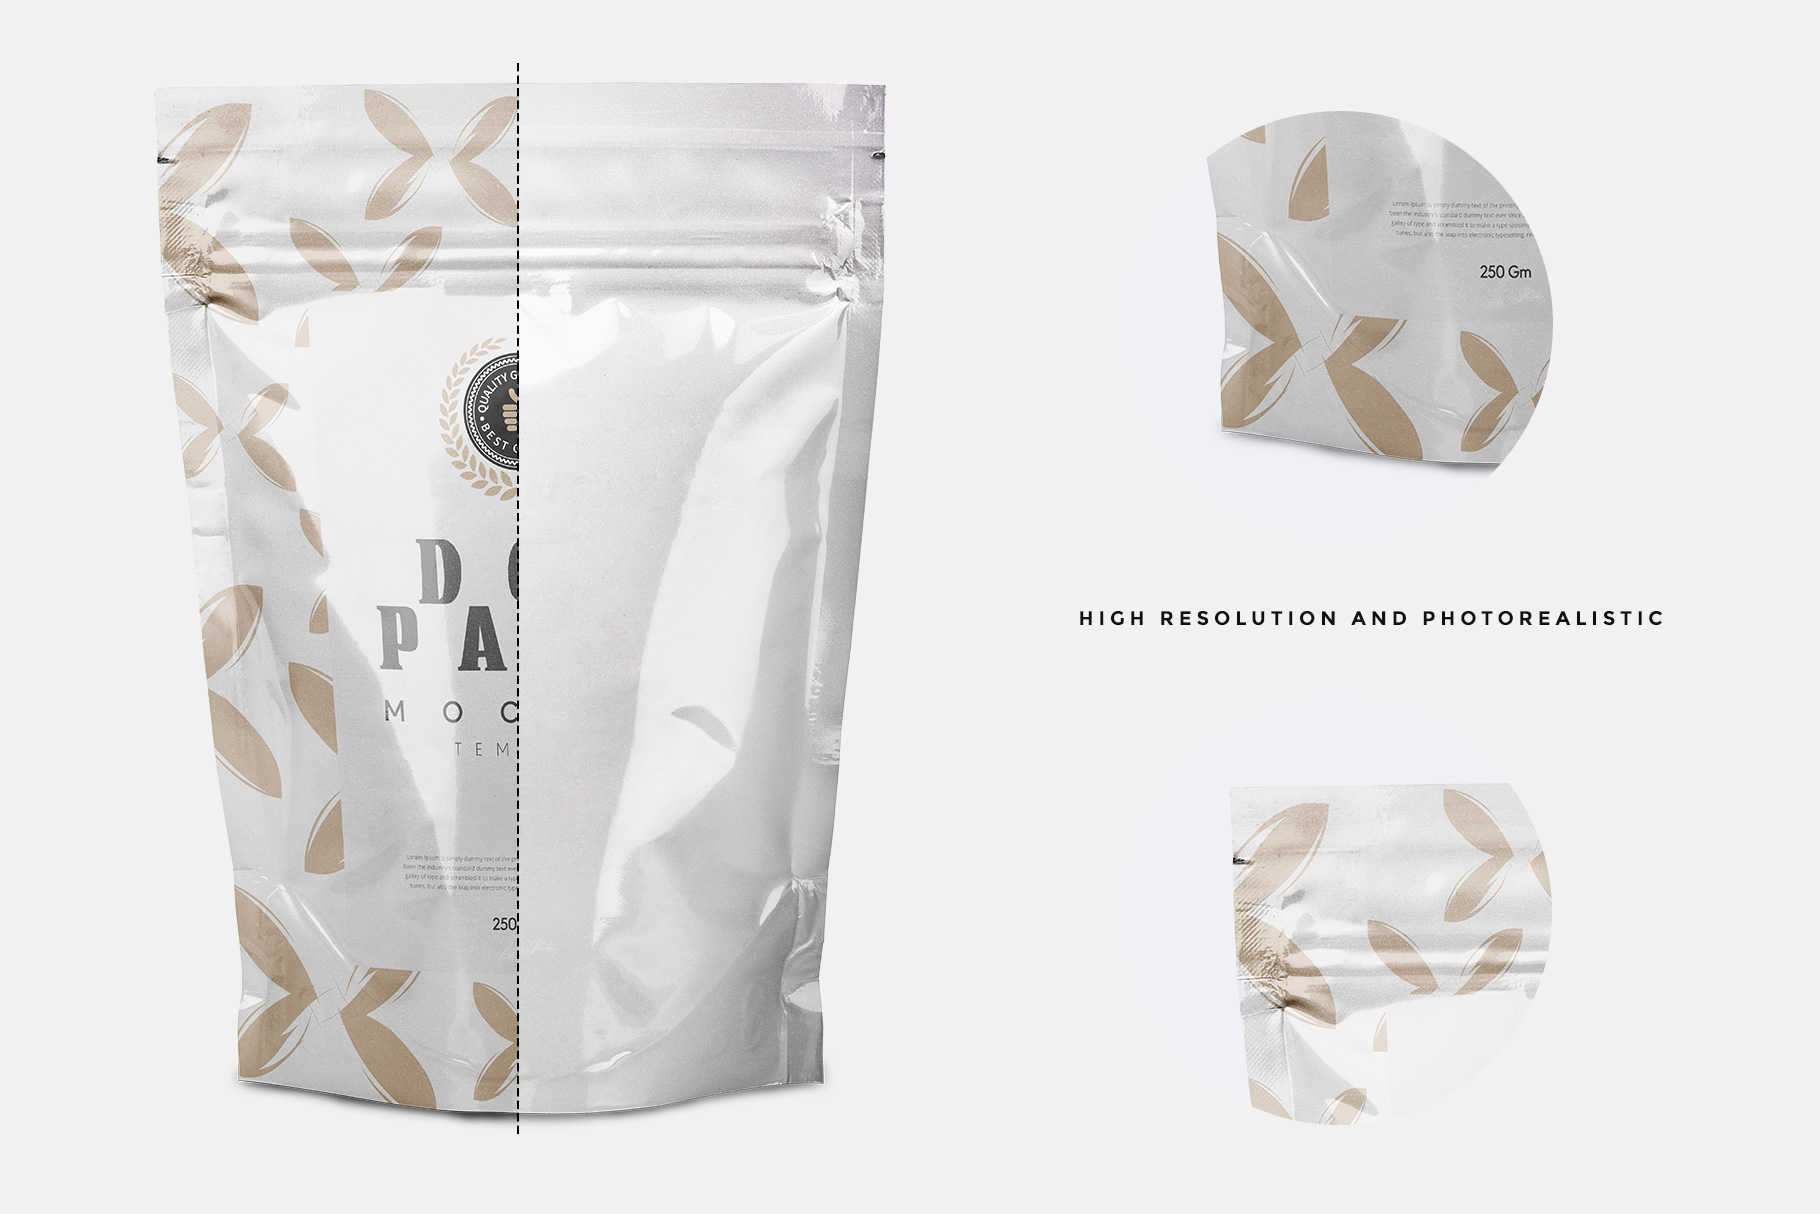 Doypack pouch packaging label presentation on the mockup PSD file